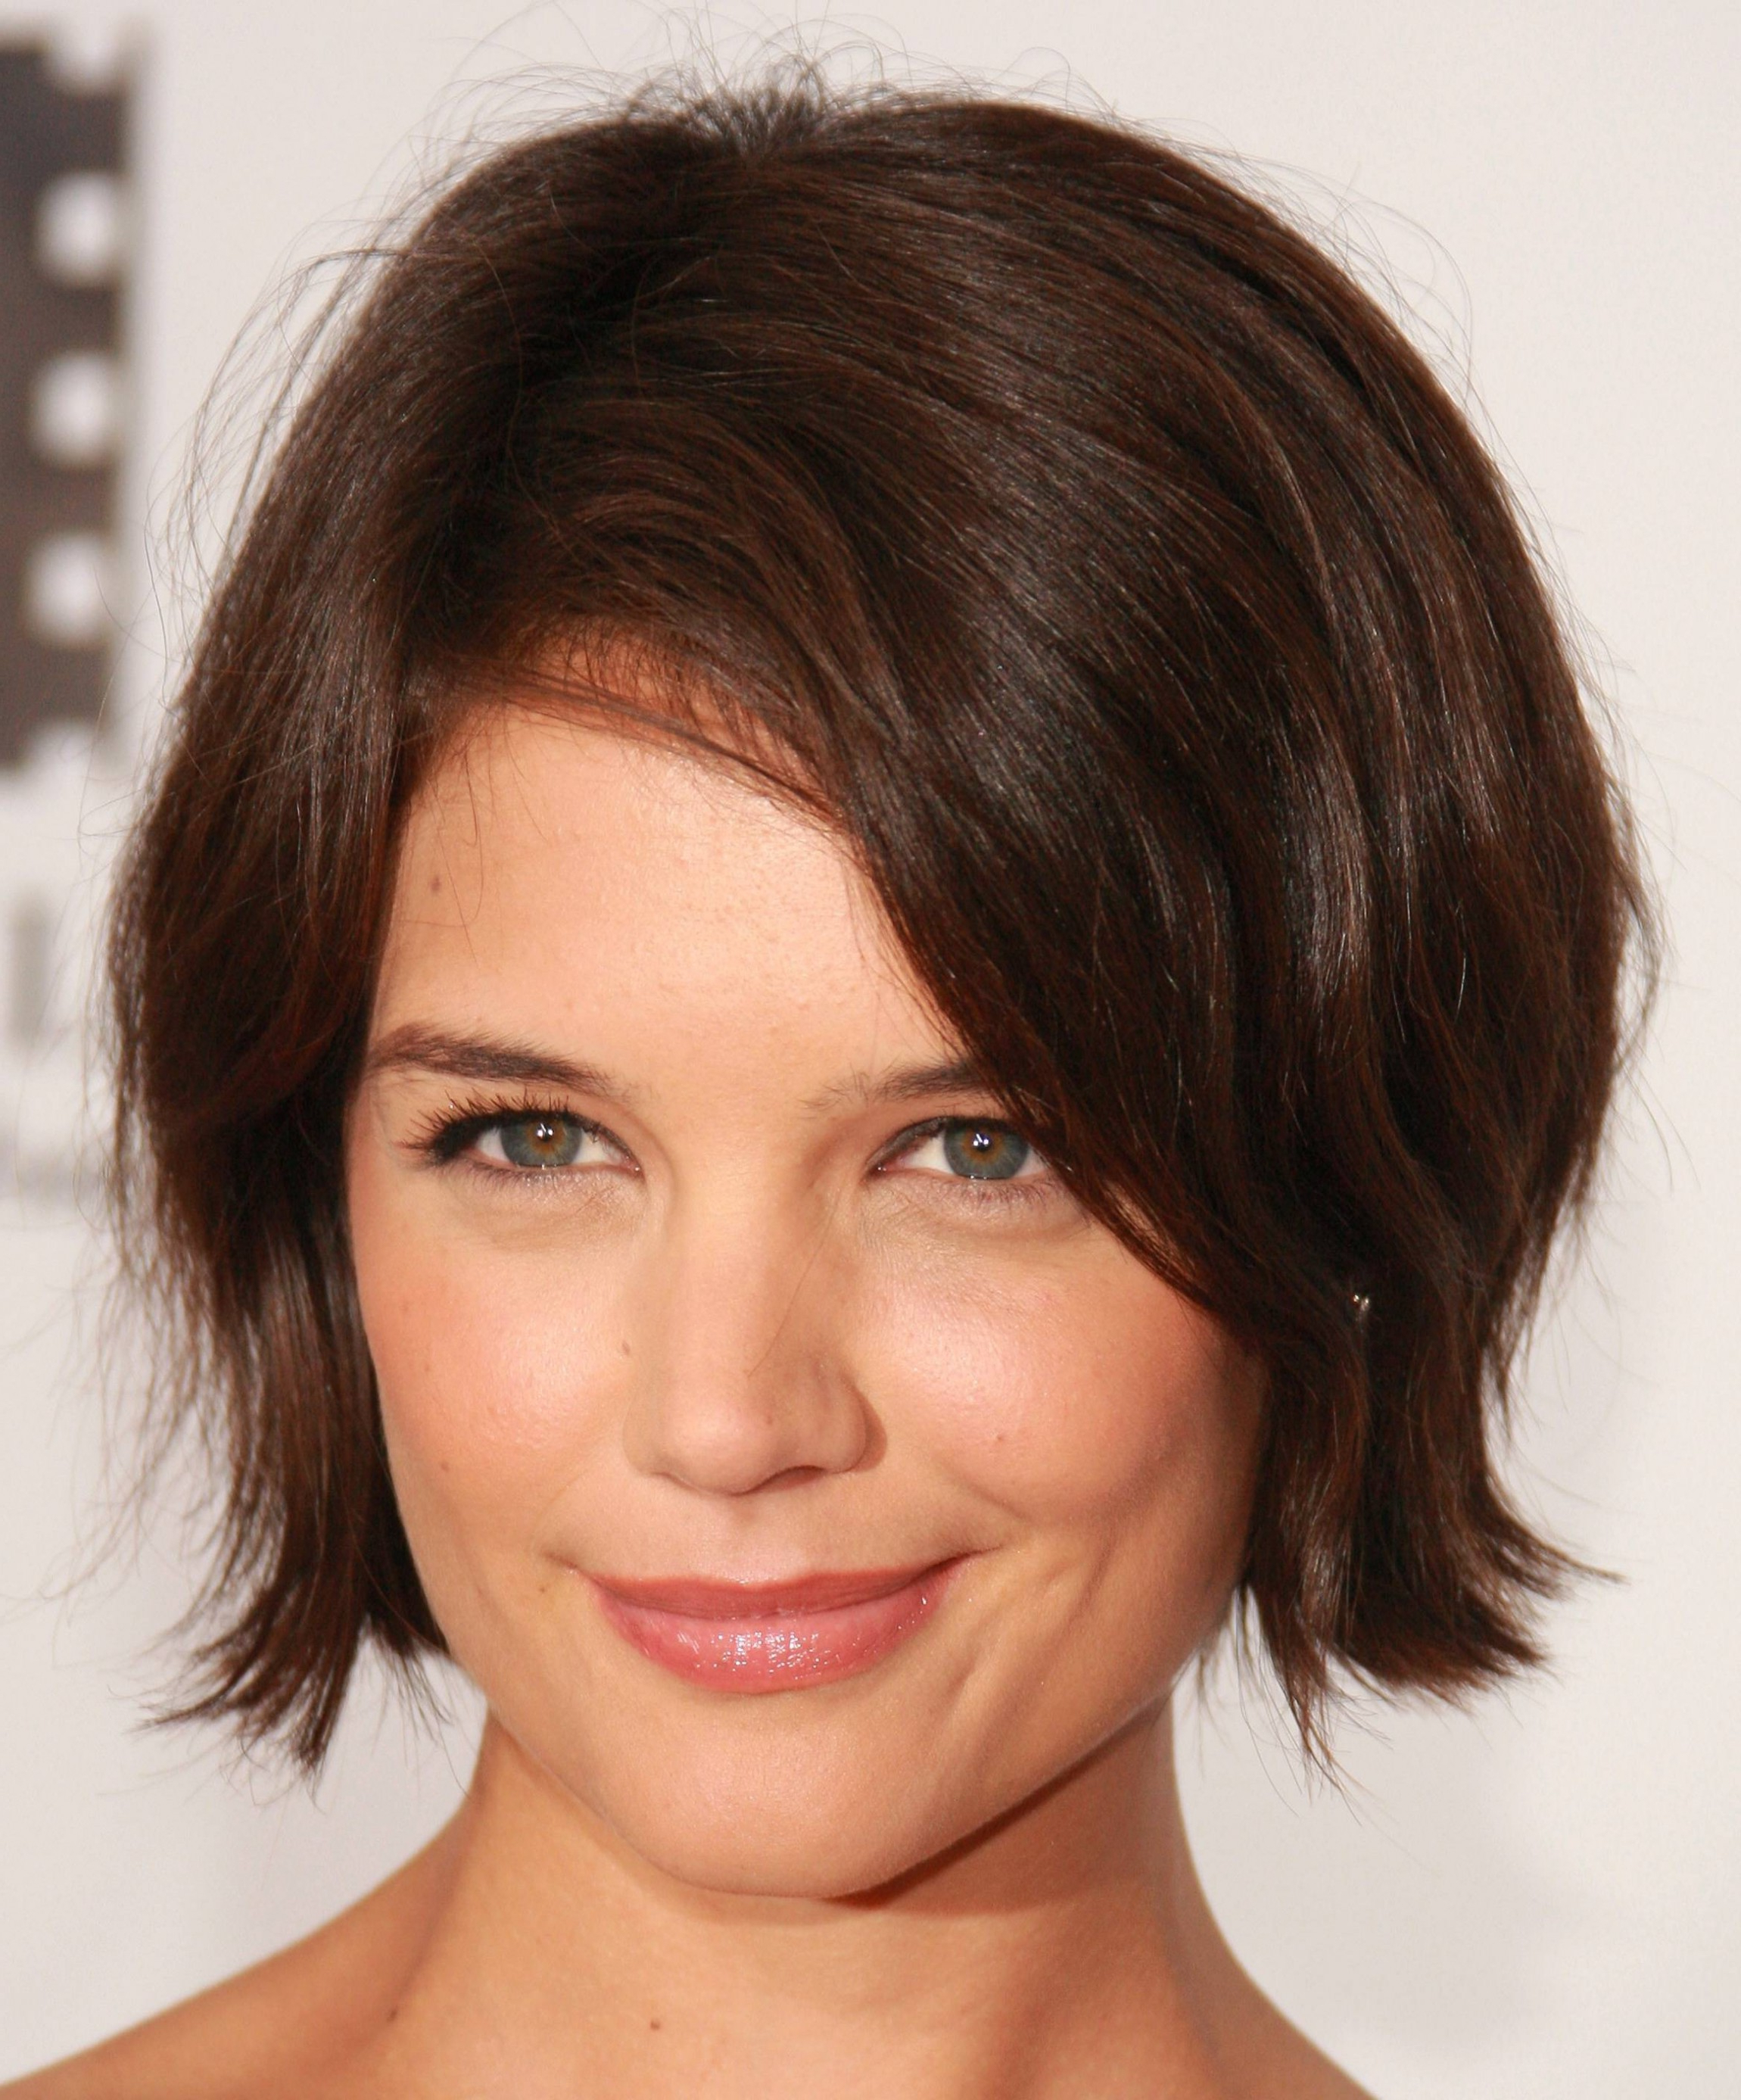 Best Short Hairstyles – Cute Hair Cut Guide For Round Face Shape For Medium Short Haircuts For Round Faces (View 9 of 25)